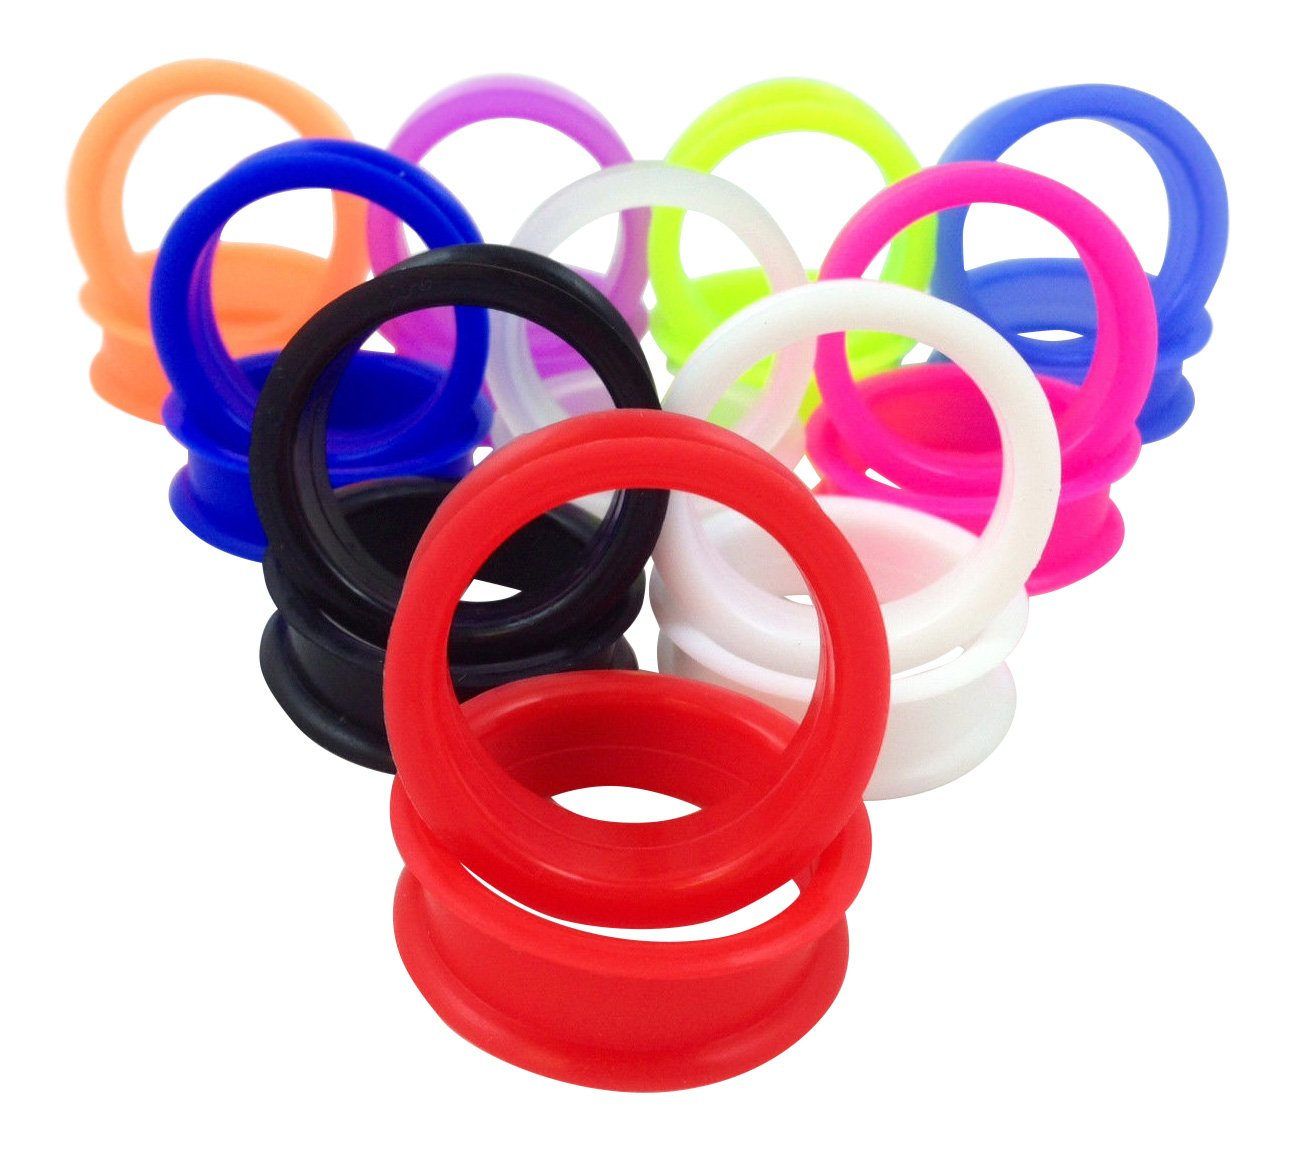 -10 PAIR SET - Soft Silicone Ear Tunnels Plugs Gauges Earlets - up to size 50mm! (1&7/8'' (48mm)) by Lobal Domination